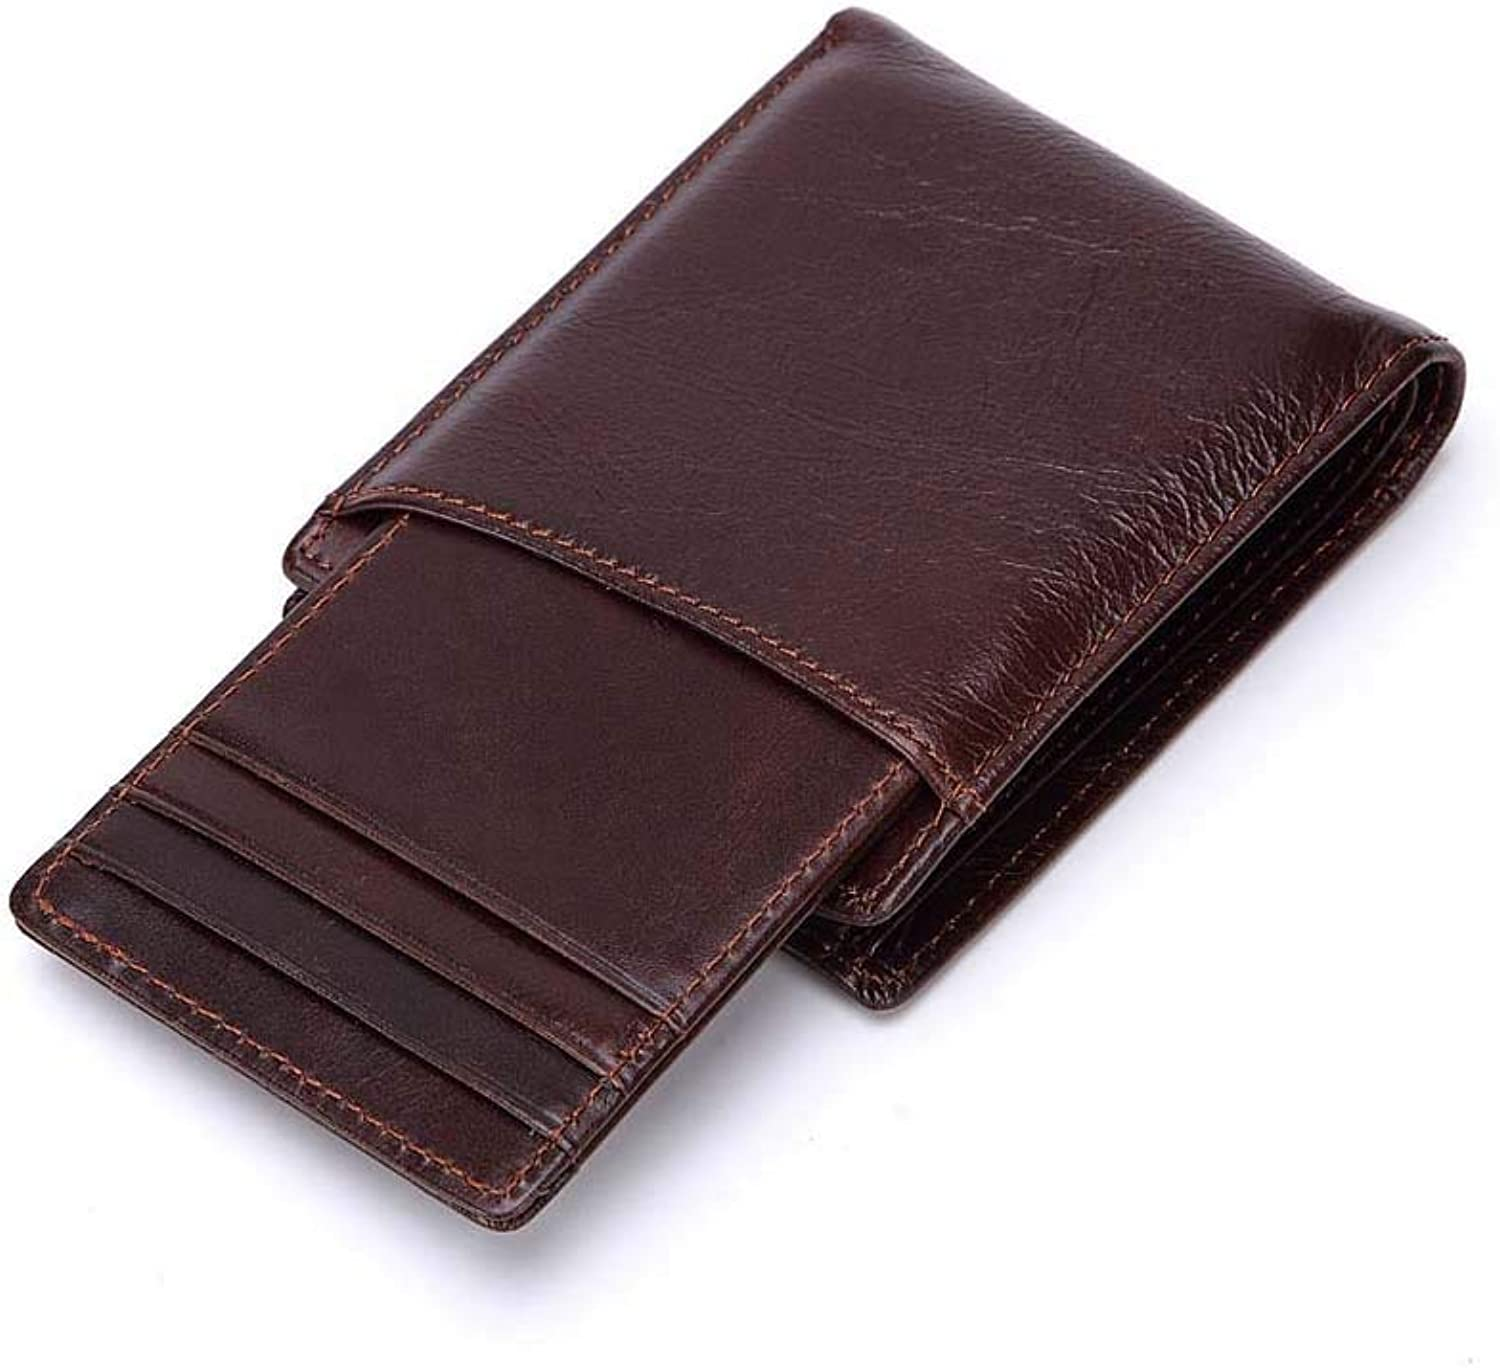 Vintage Men Short Wallet Short Vintage Men's Wallet, Removable Card Bag, Multifunctional Wallet. by Enking